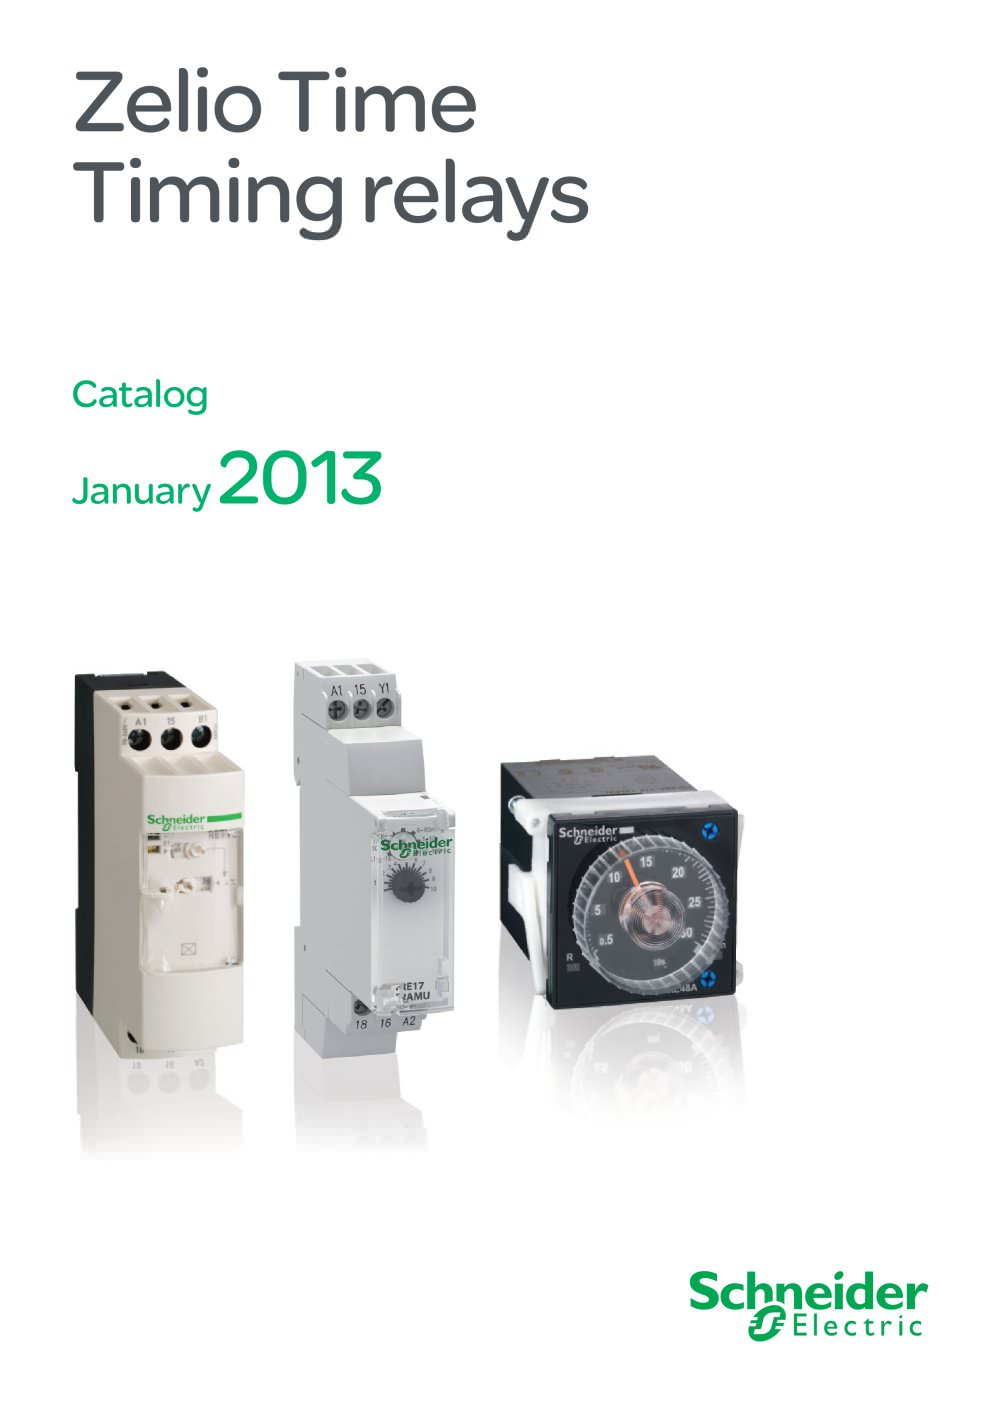 Schneider Electric Time Delay Relay Wiring Diagram Solutions Motor Starter Zelio Timing Relays Catalog Pdf